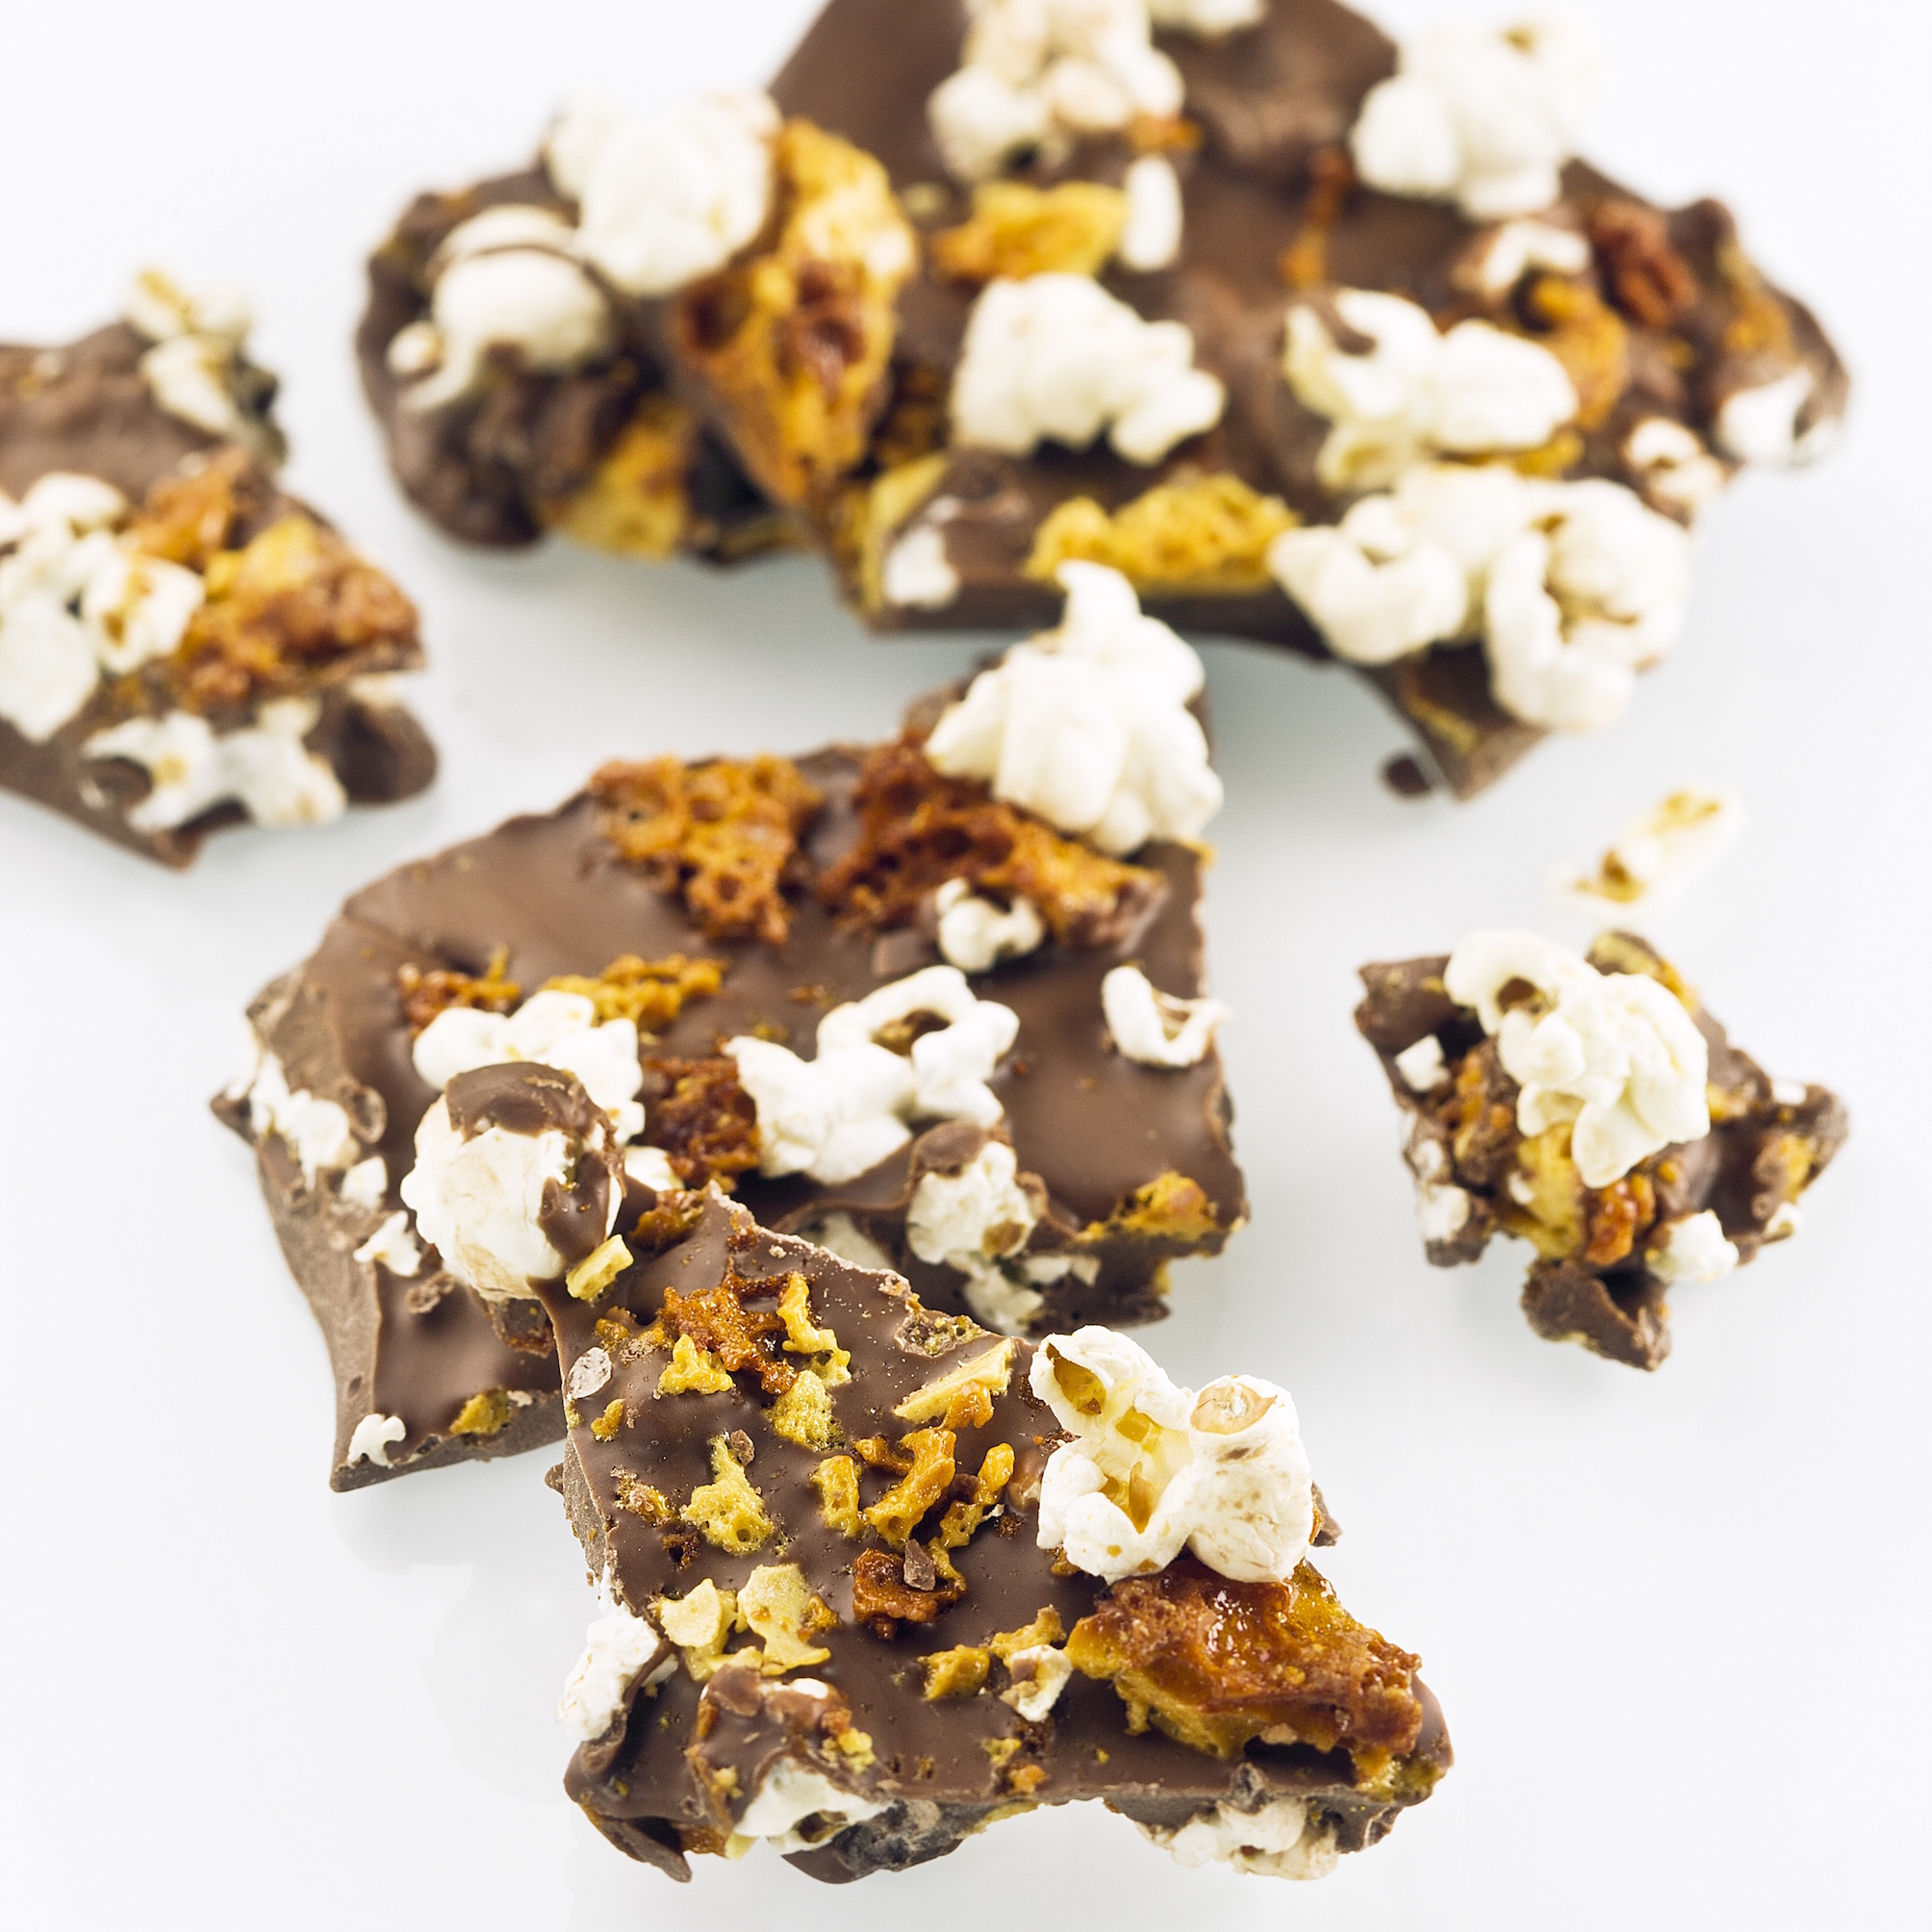 Darren Purchese Chocolate, Popcorn and Honeycomb Rubble Recipe